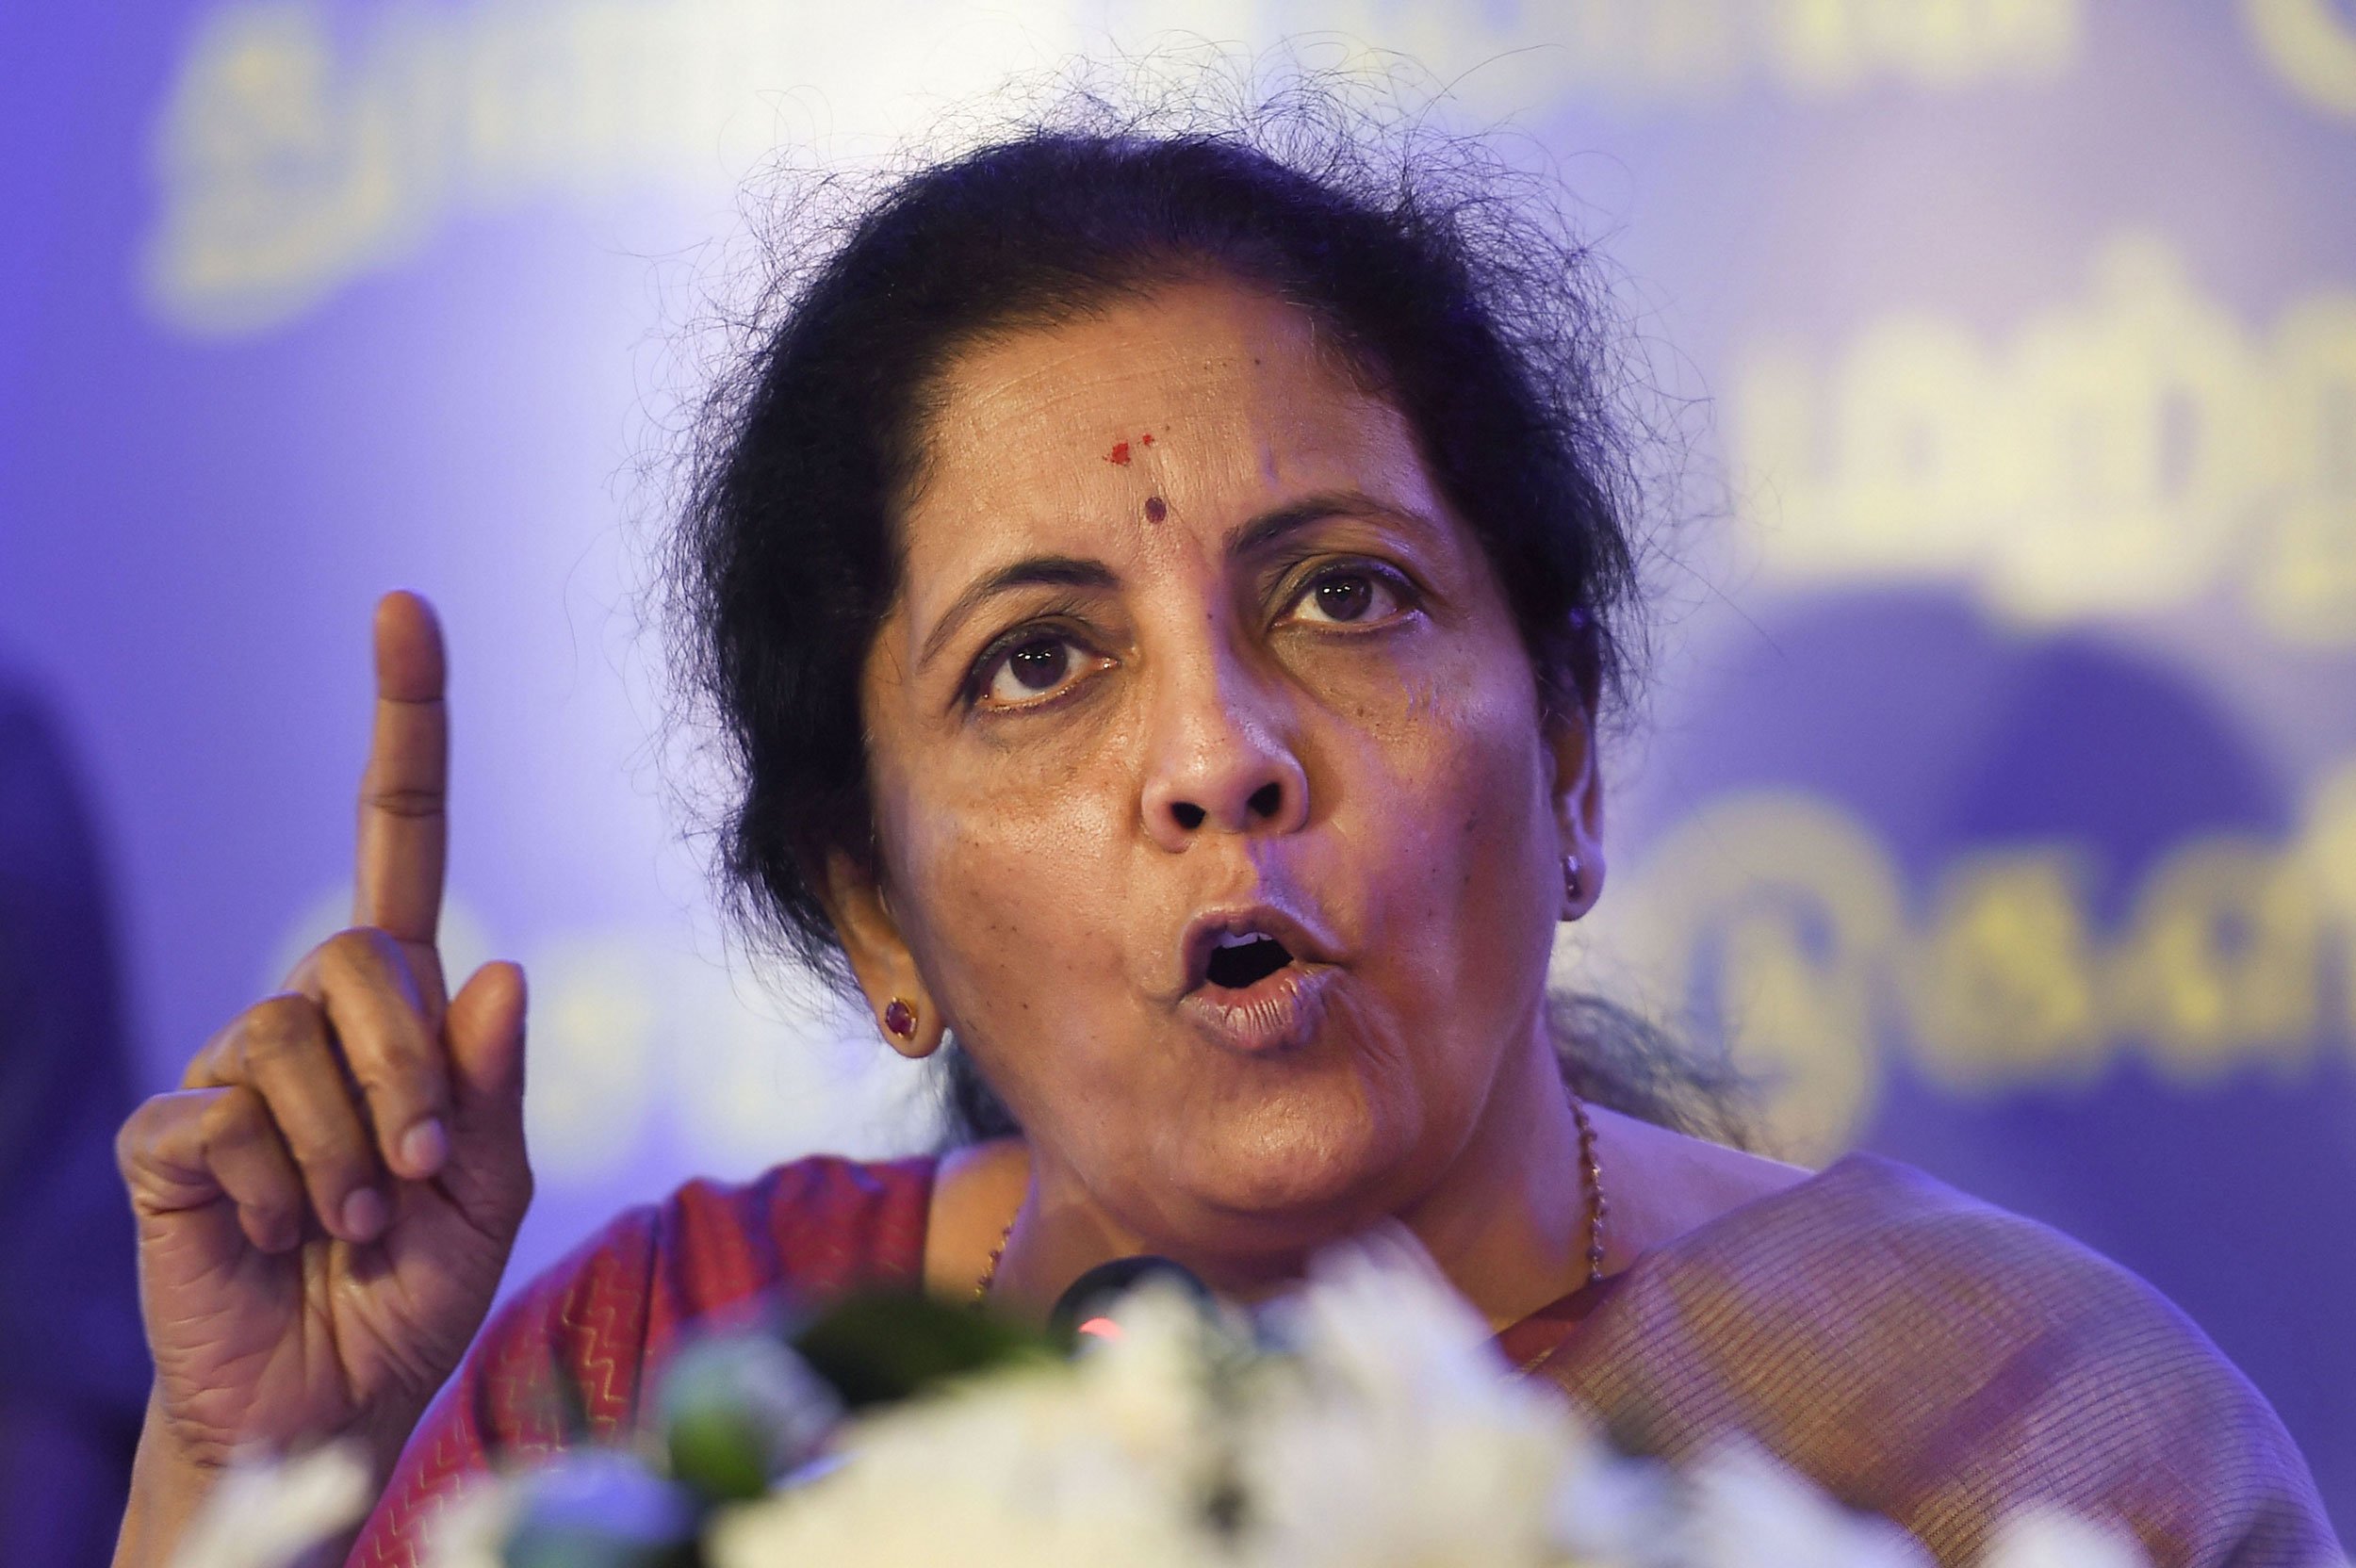 Nirmala Sitharaman's announcement and the subsequent notification came much later than Prime Minister's announcement on early evening Saturday of the Covid-19 fund — all through tweets.